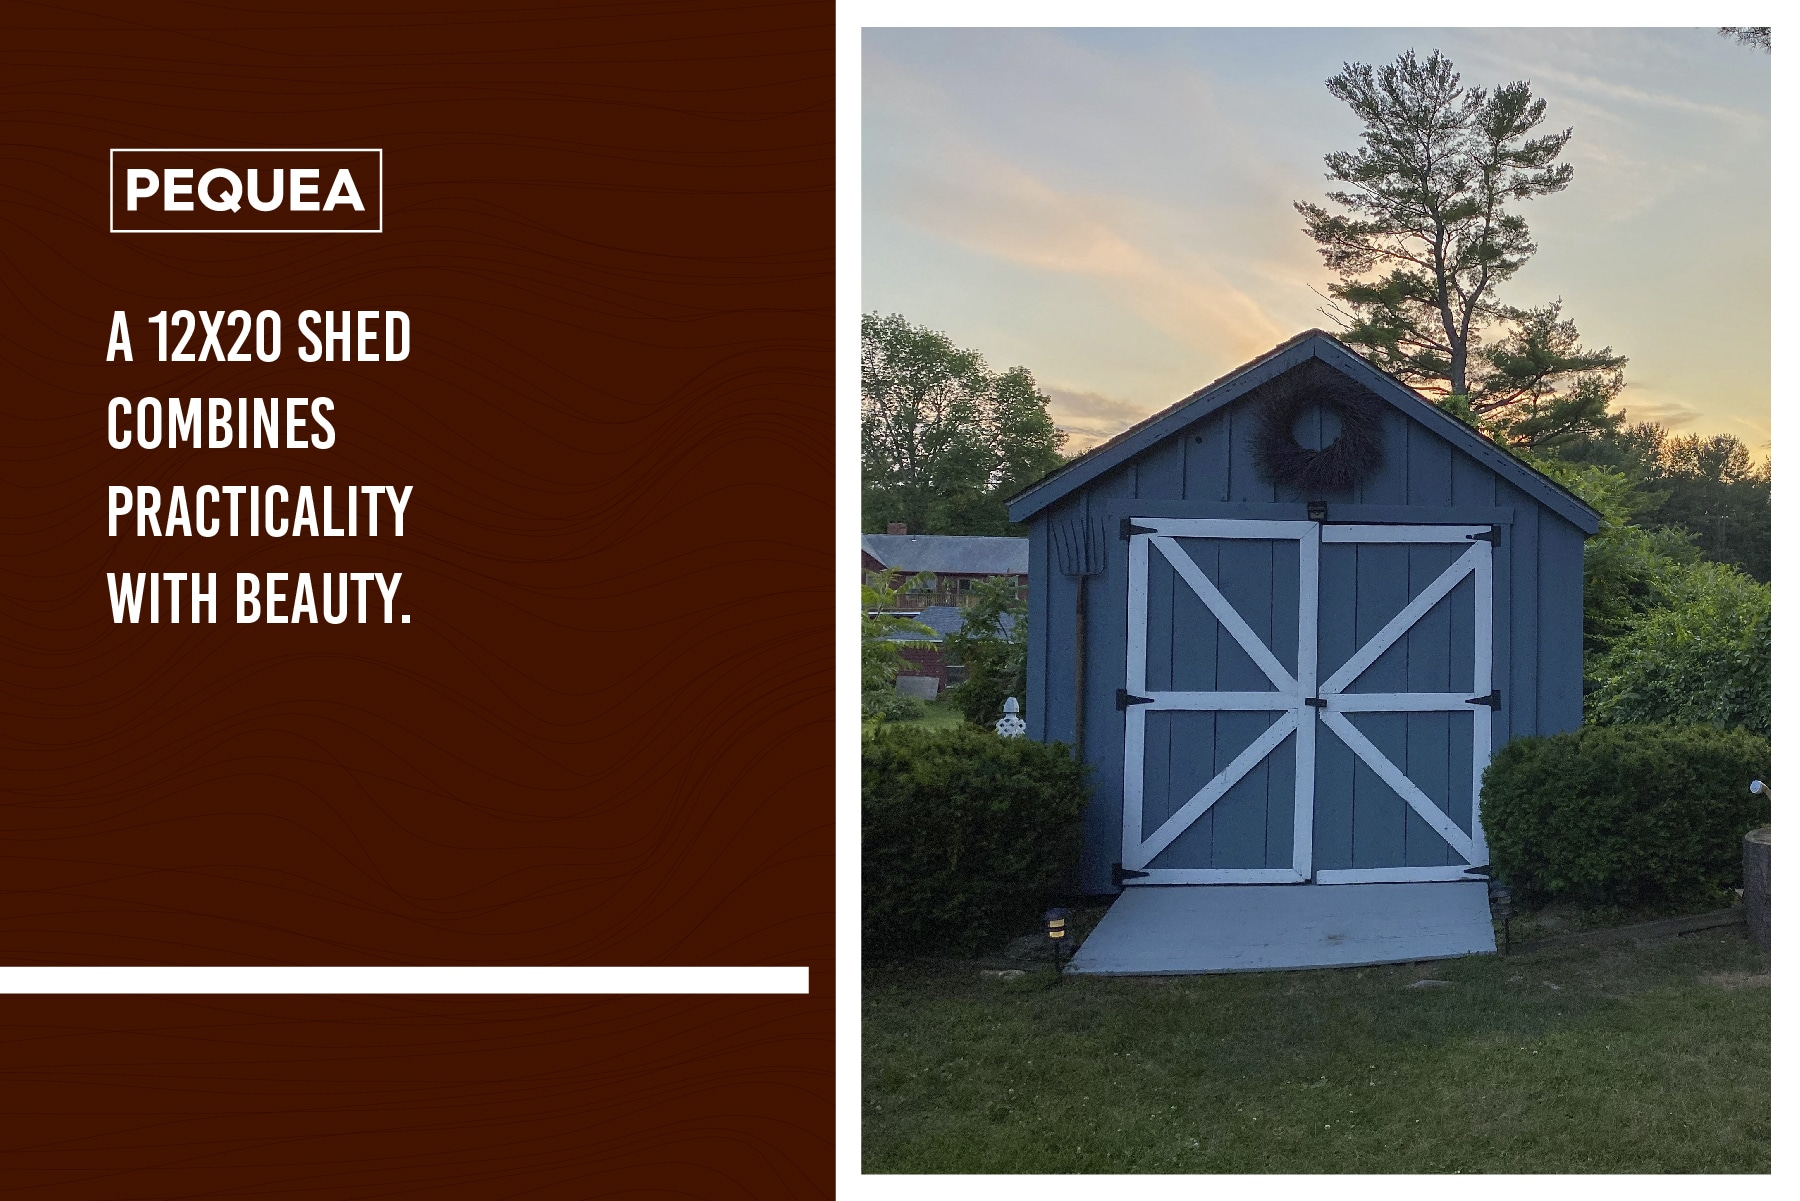 A 12x20 shed is practical and beautiful